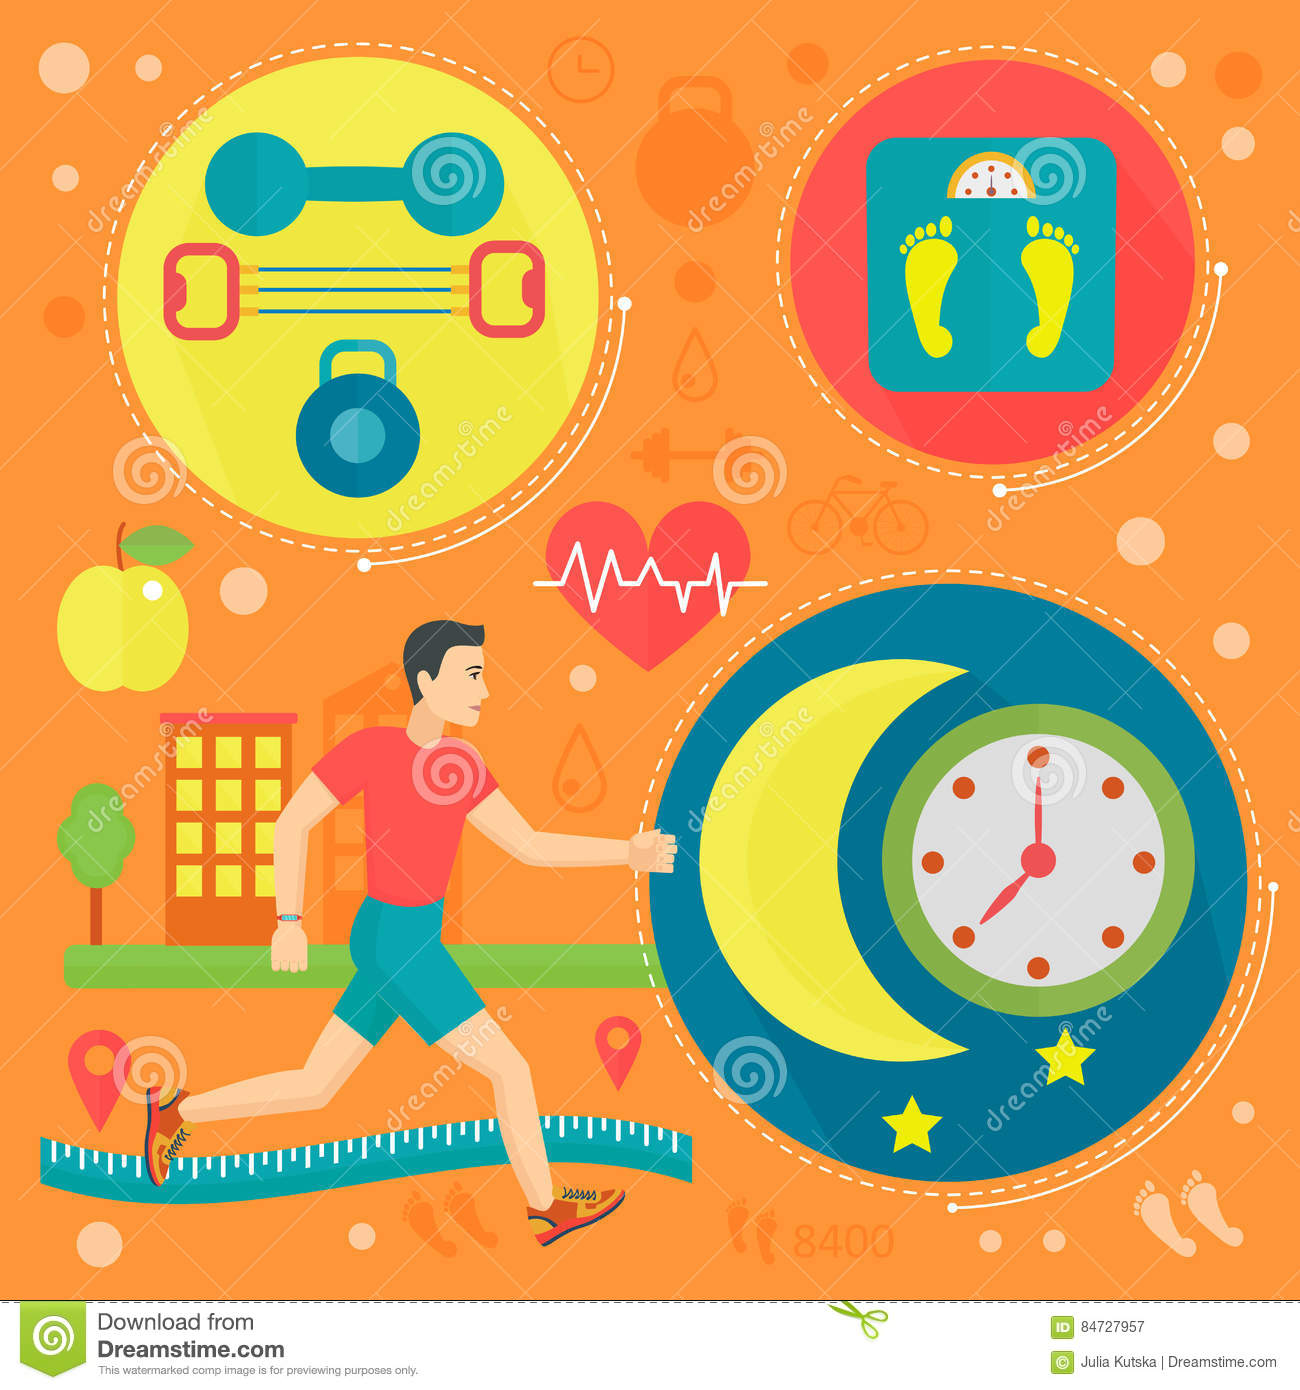 Poster design health - Healthy Life Flat Concept Vector Illustration Sport Fitness Gym And Healthy Food Icos Design